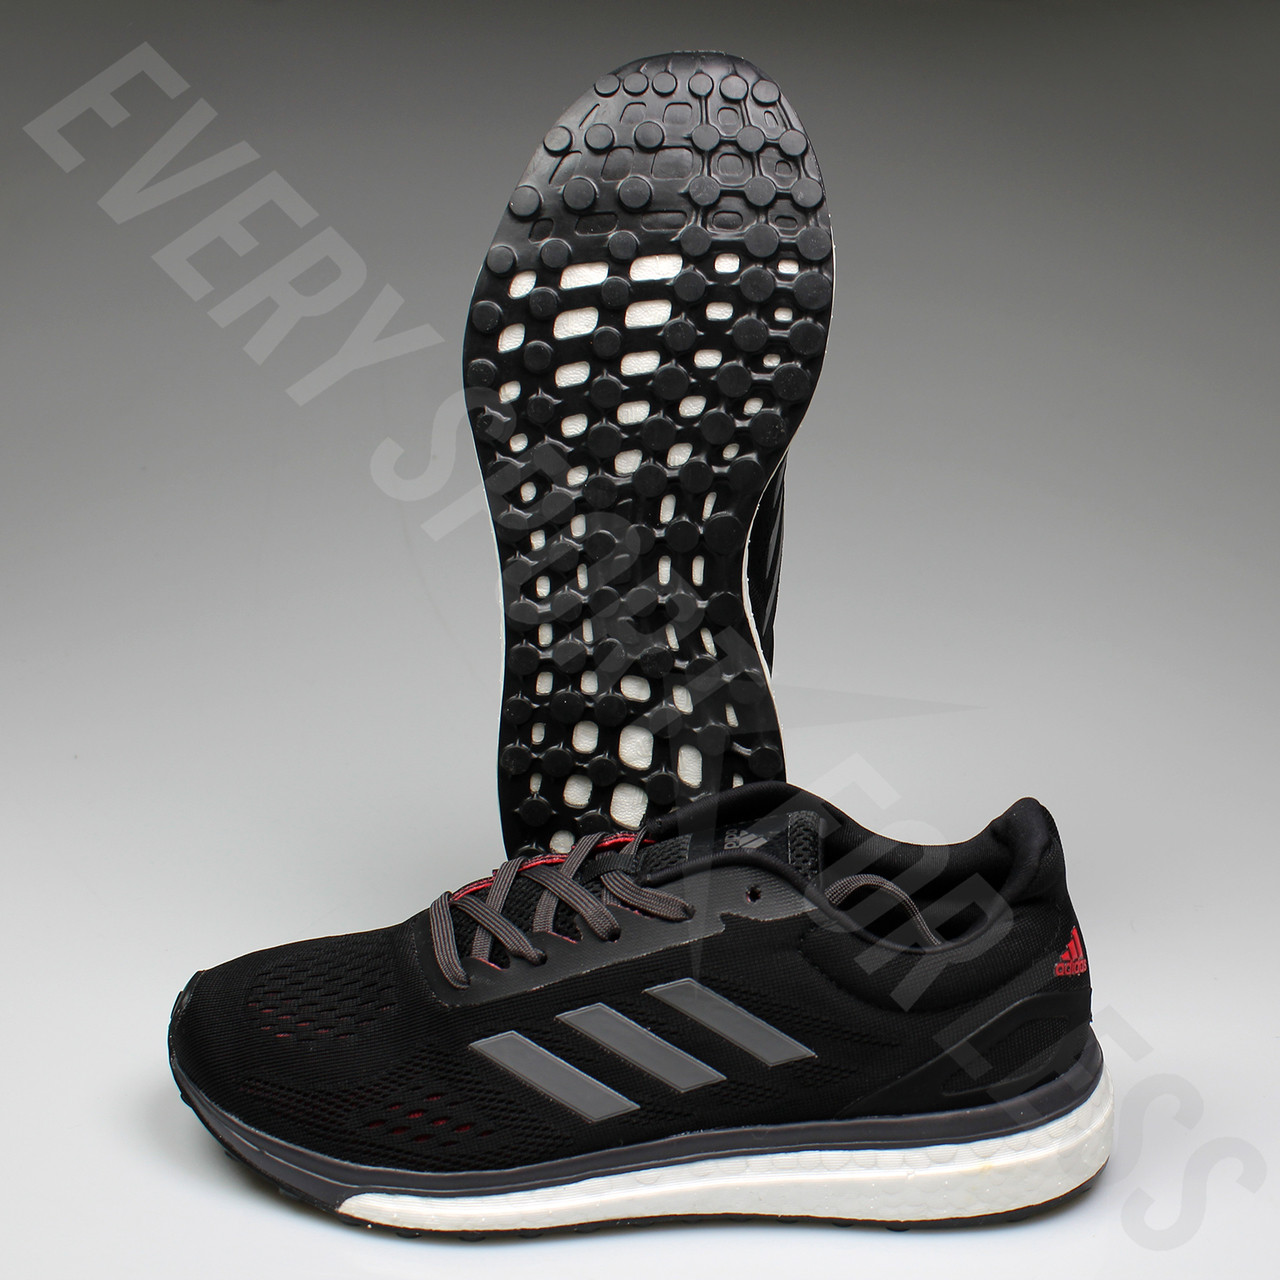 brand new ee883 05af1 ... Adidas Sonic Drive Women s Running Shoes BB3424 - Black, ...